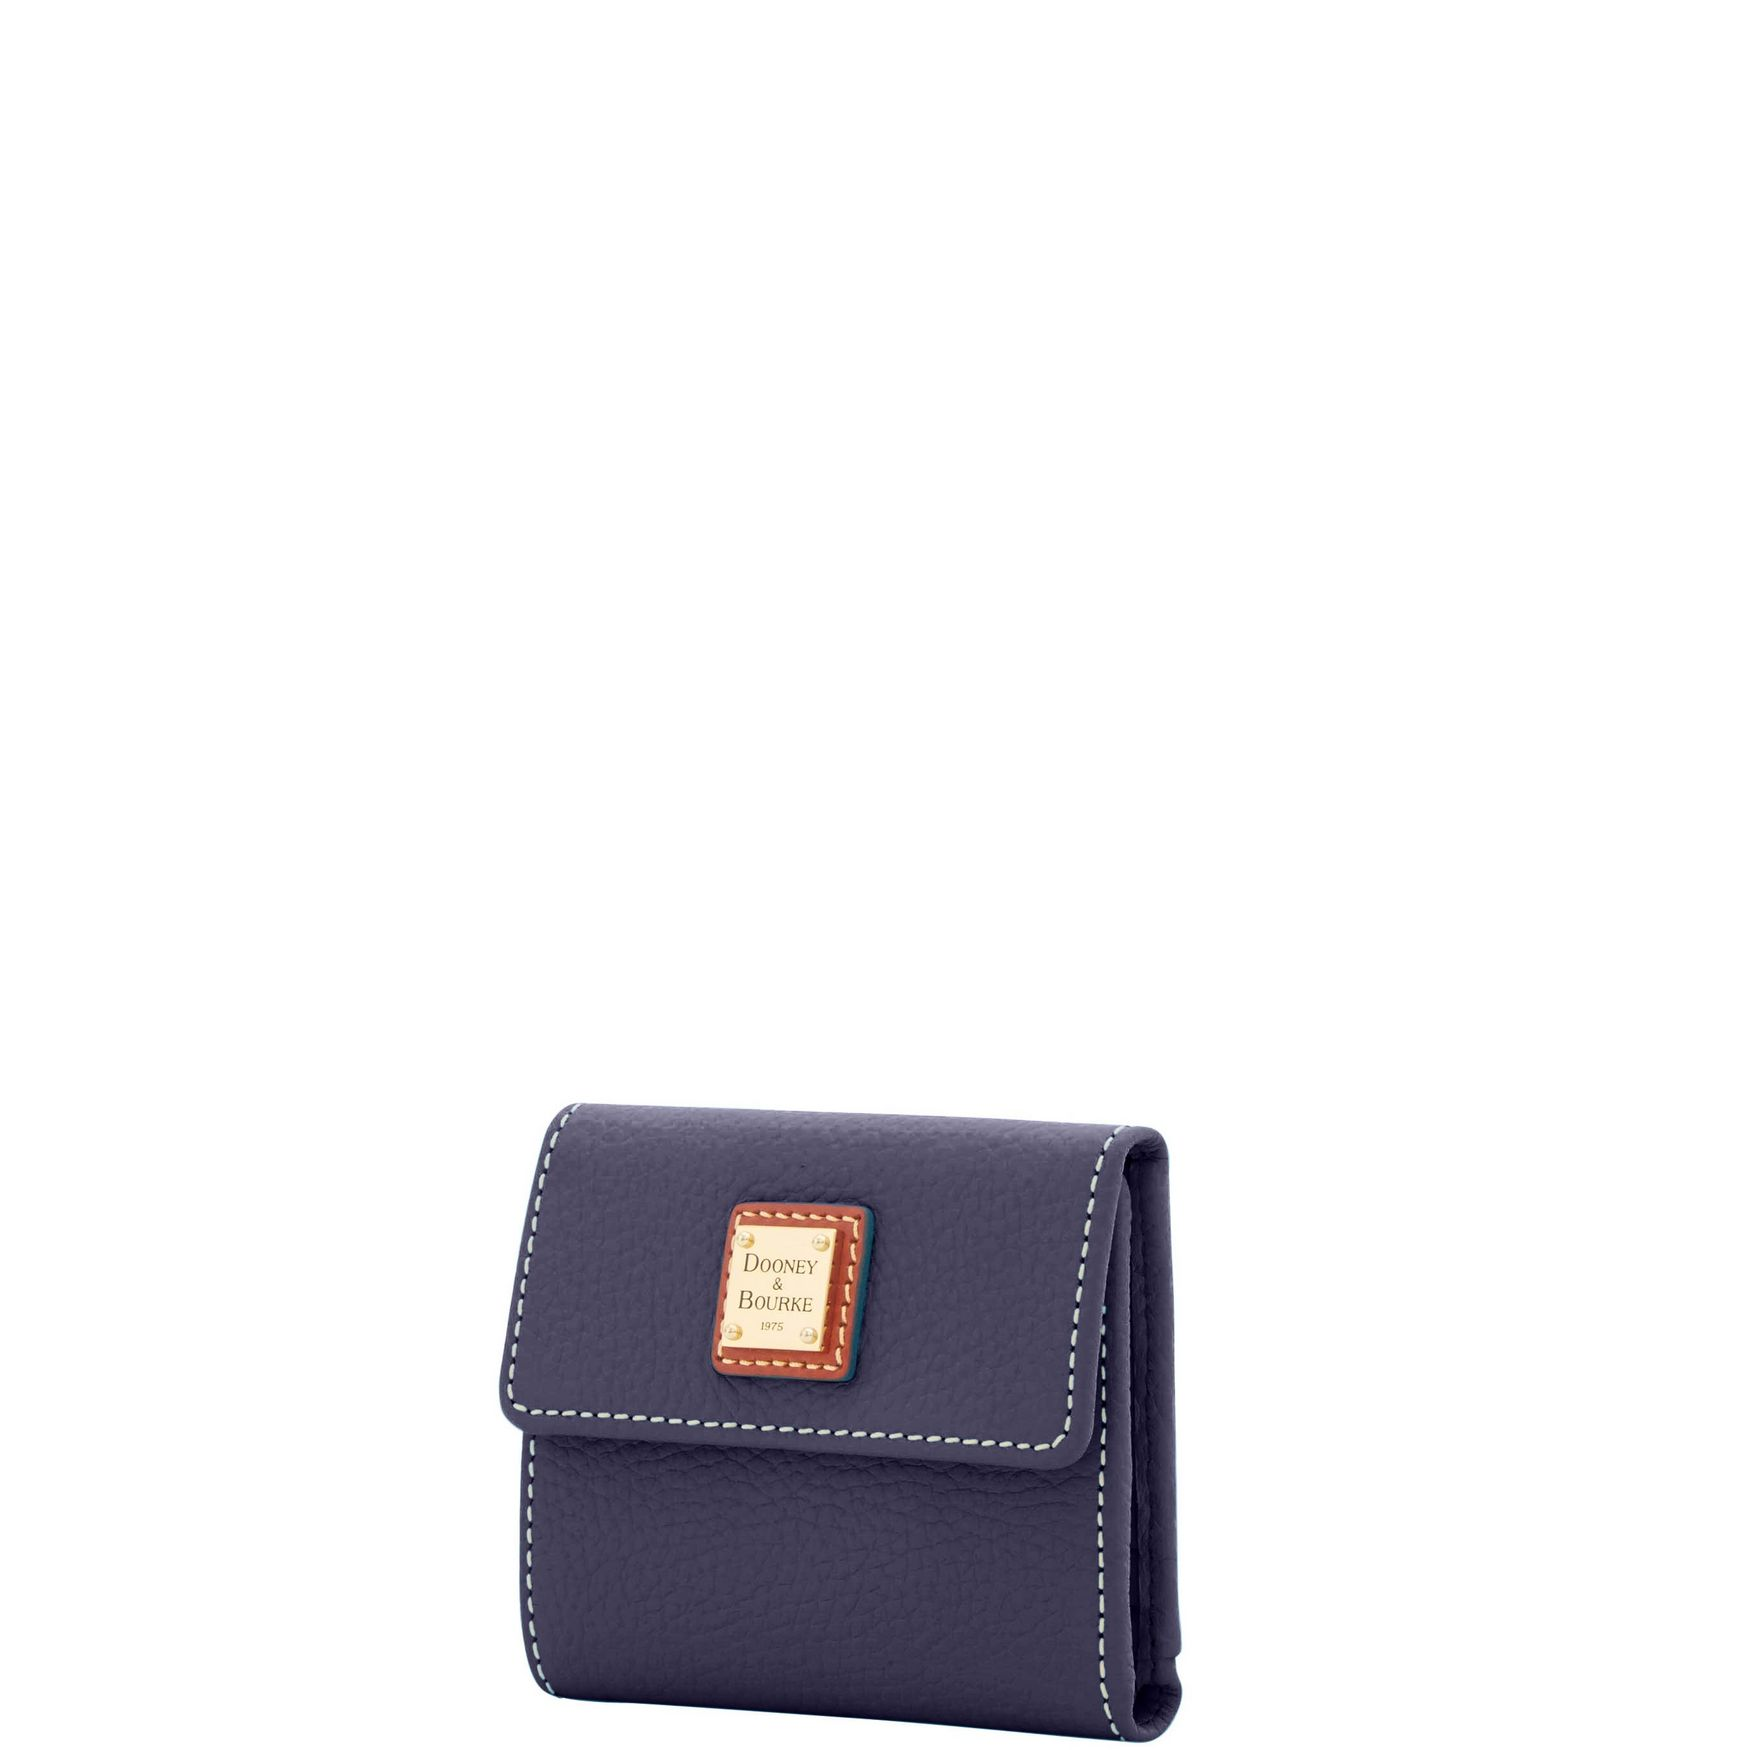 Dooney-amp-Bourke-Pebble-Grain-Small-Flap-Wallet thumbnail 52